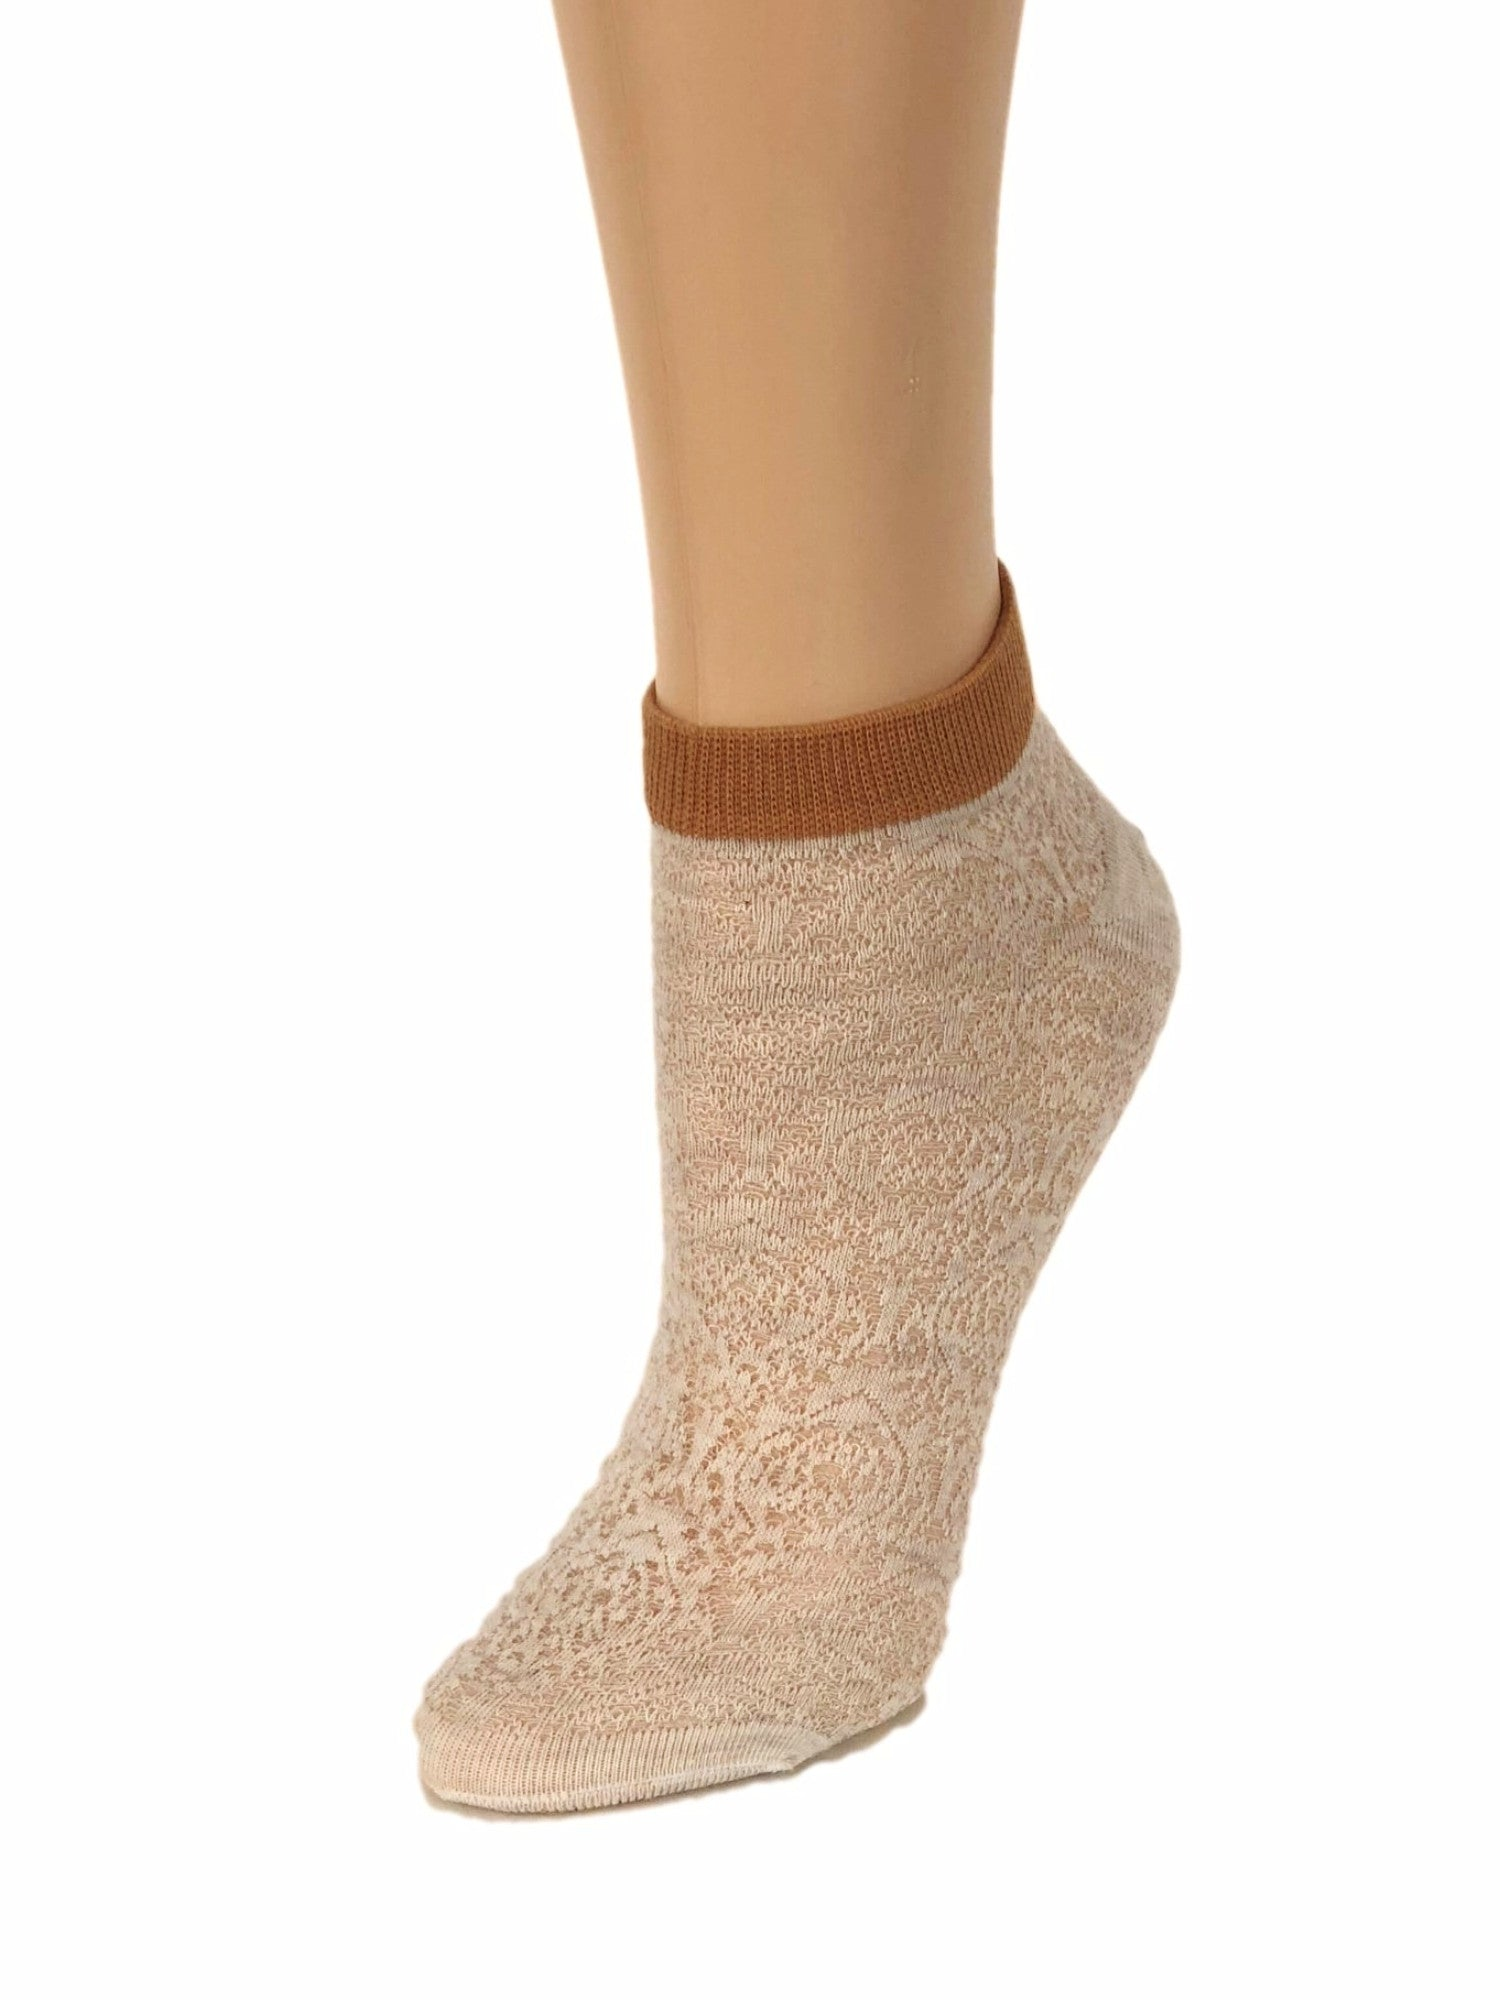 Maroon-Stripped Cream Ankle Sheer Socks - Global Trendz Fashion®